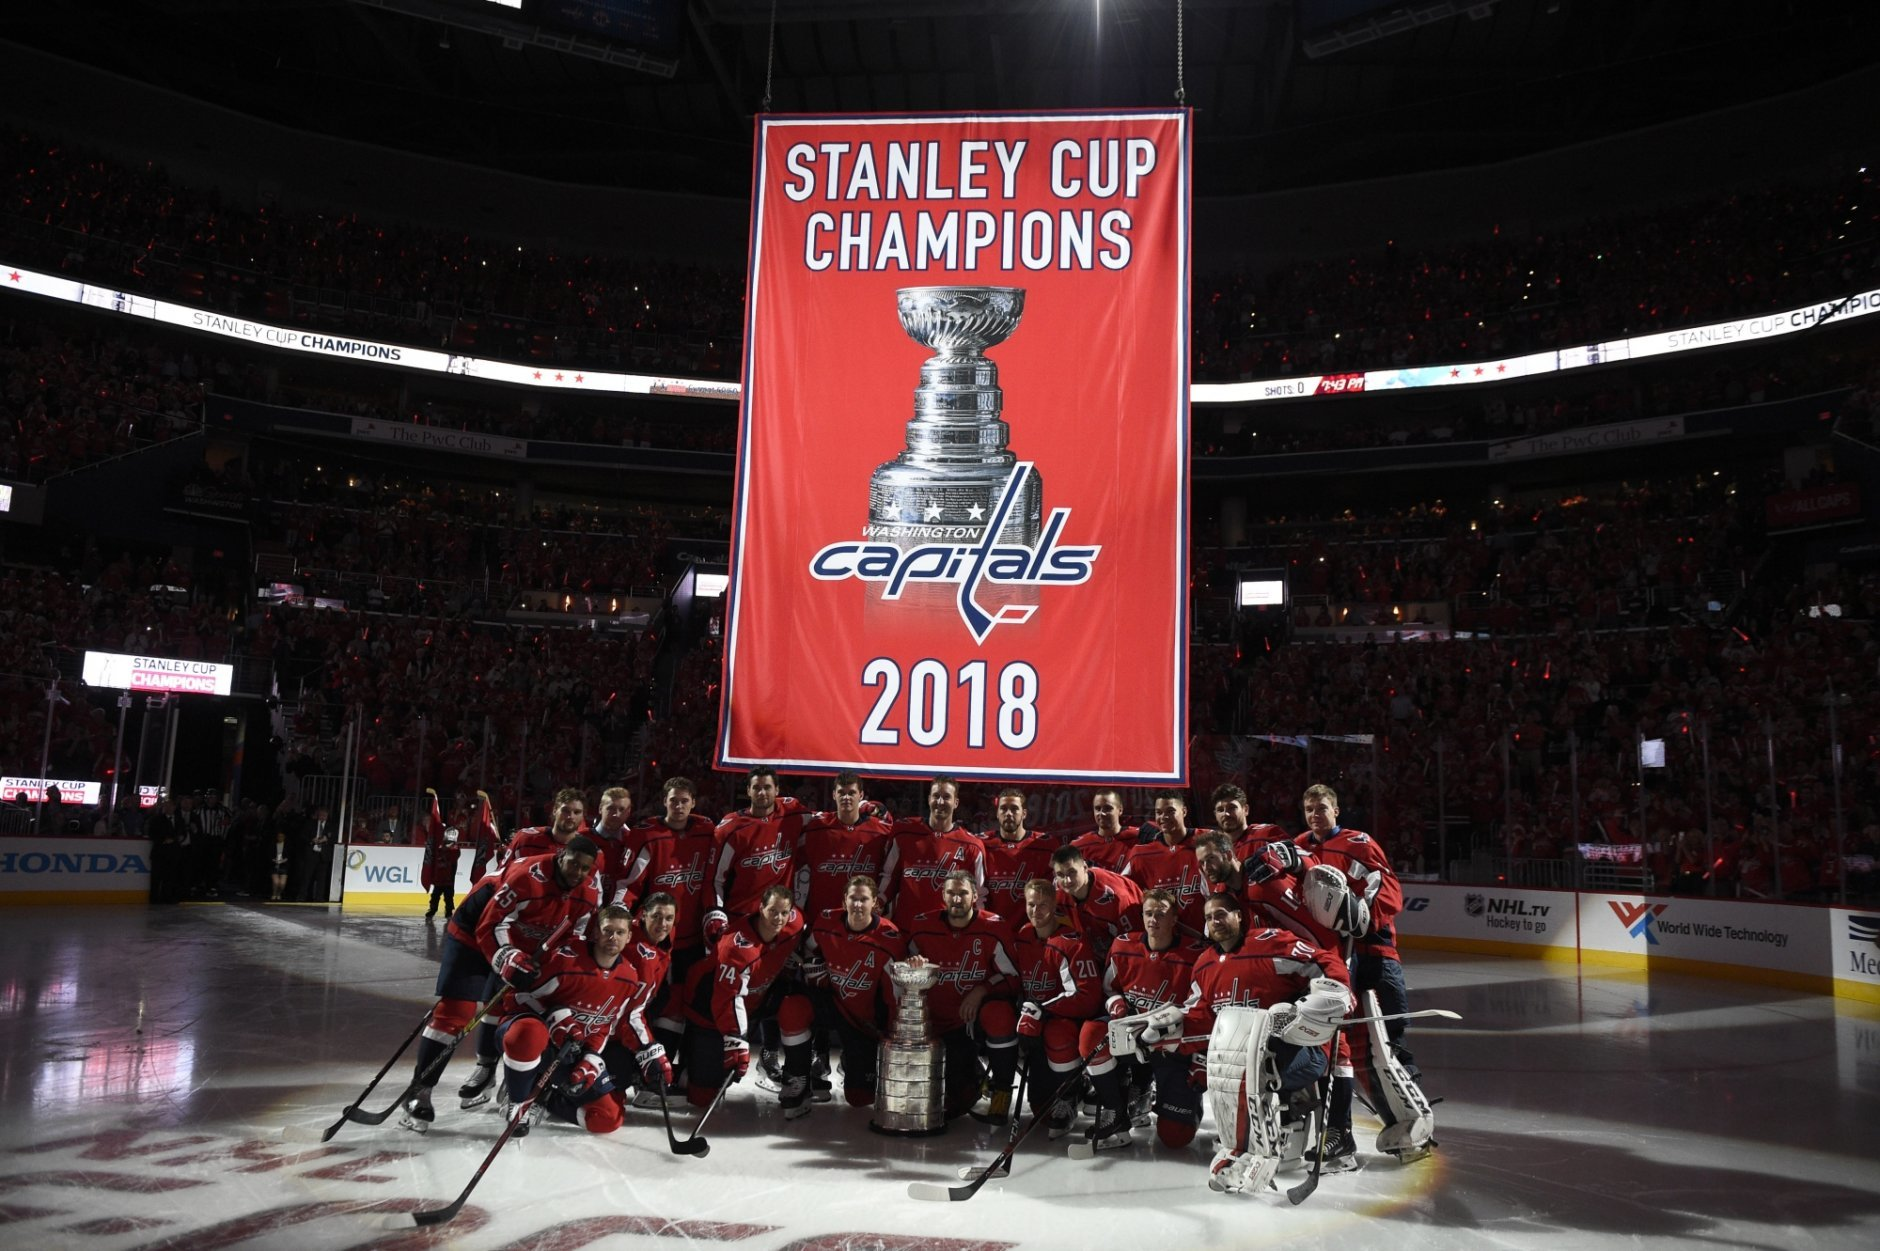 4a9cf78f The Washington Capitals pose under the Stanley Cup champions banner before  the team's NHL hockey game